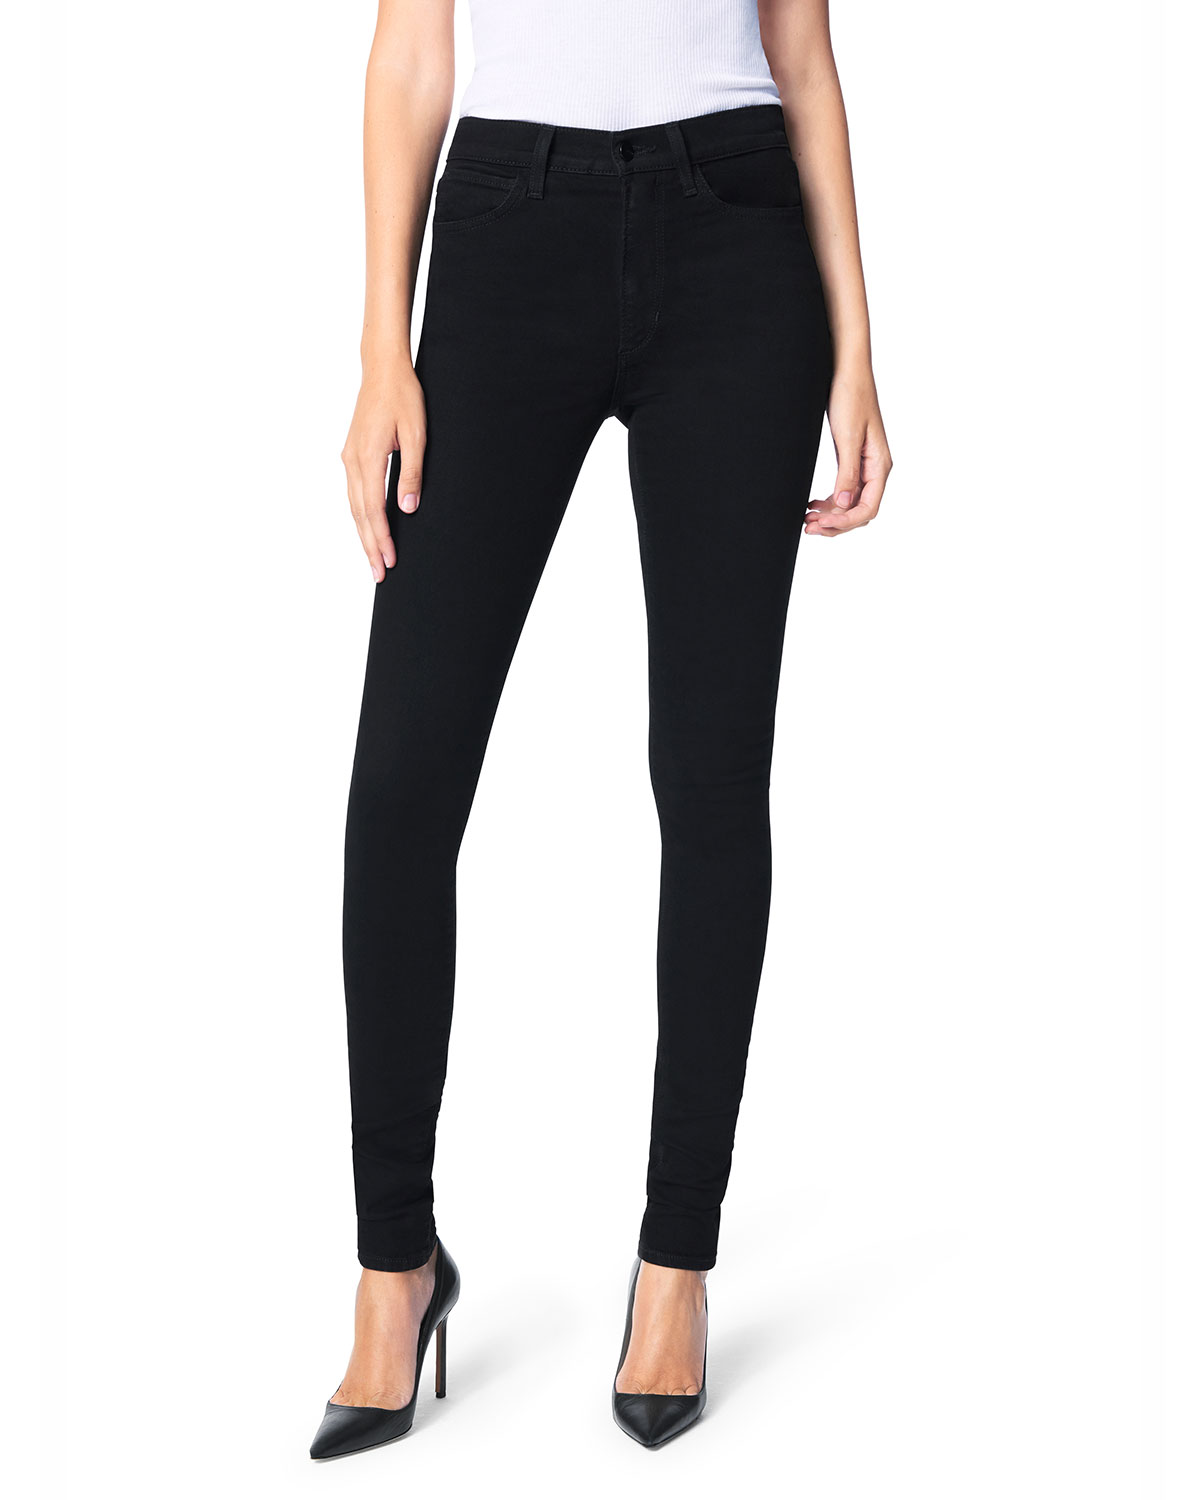 The High-Rise Twiggy Skinny Jeans